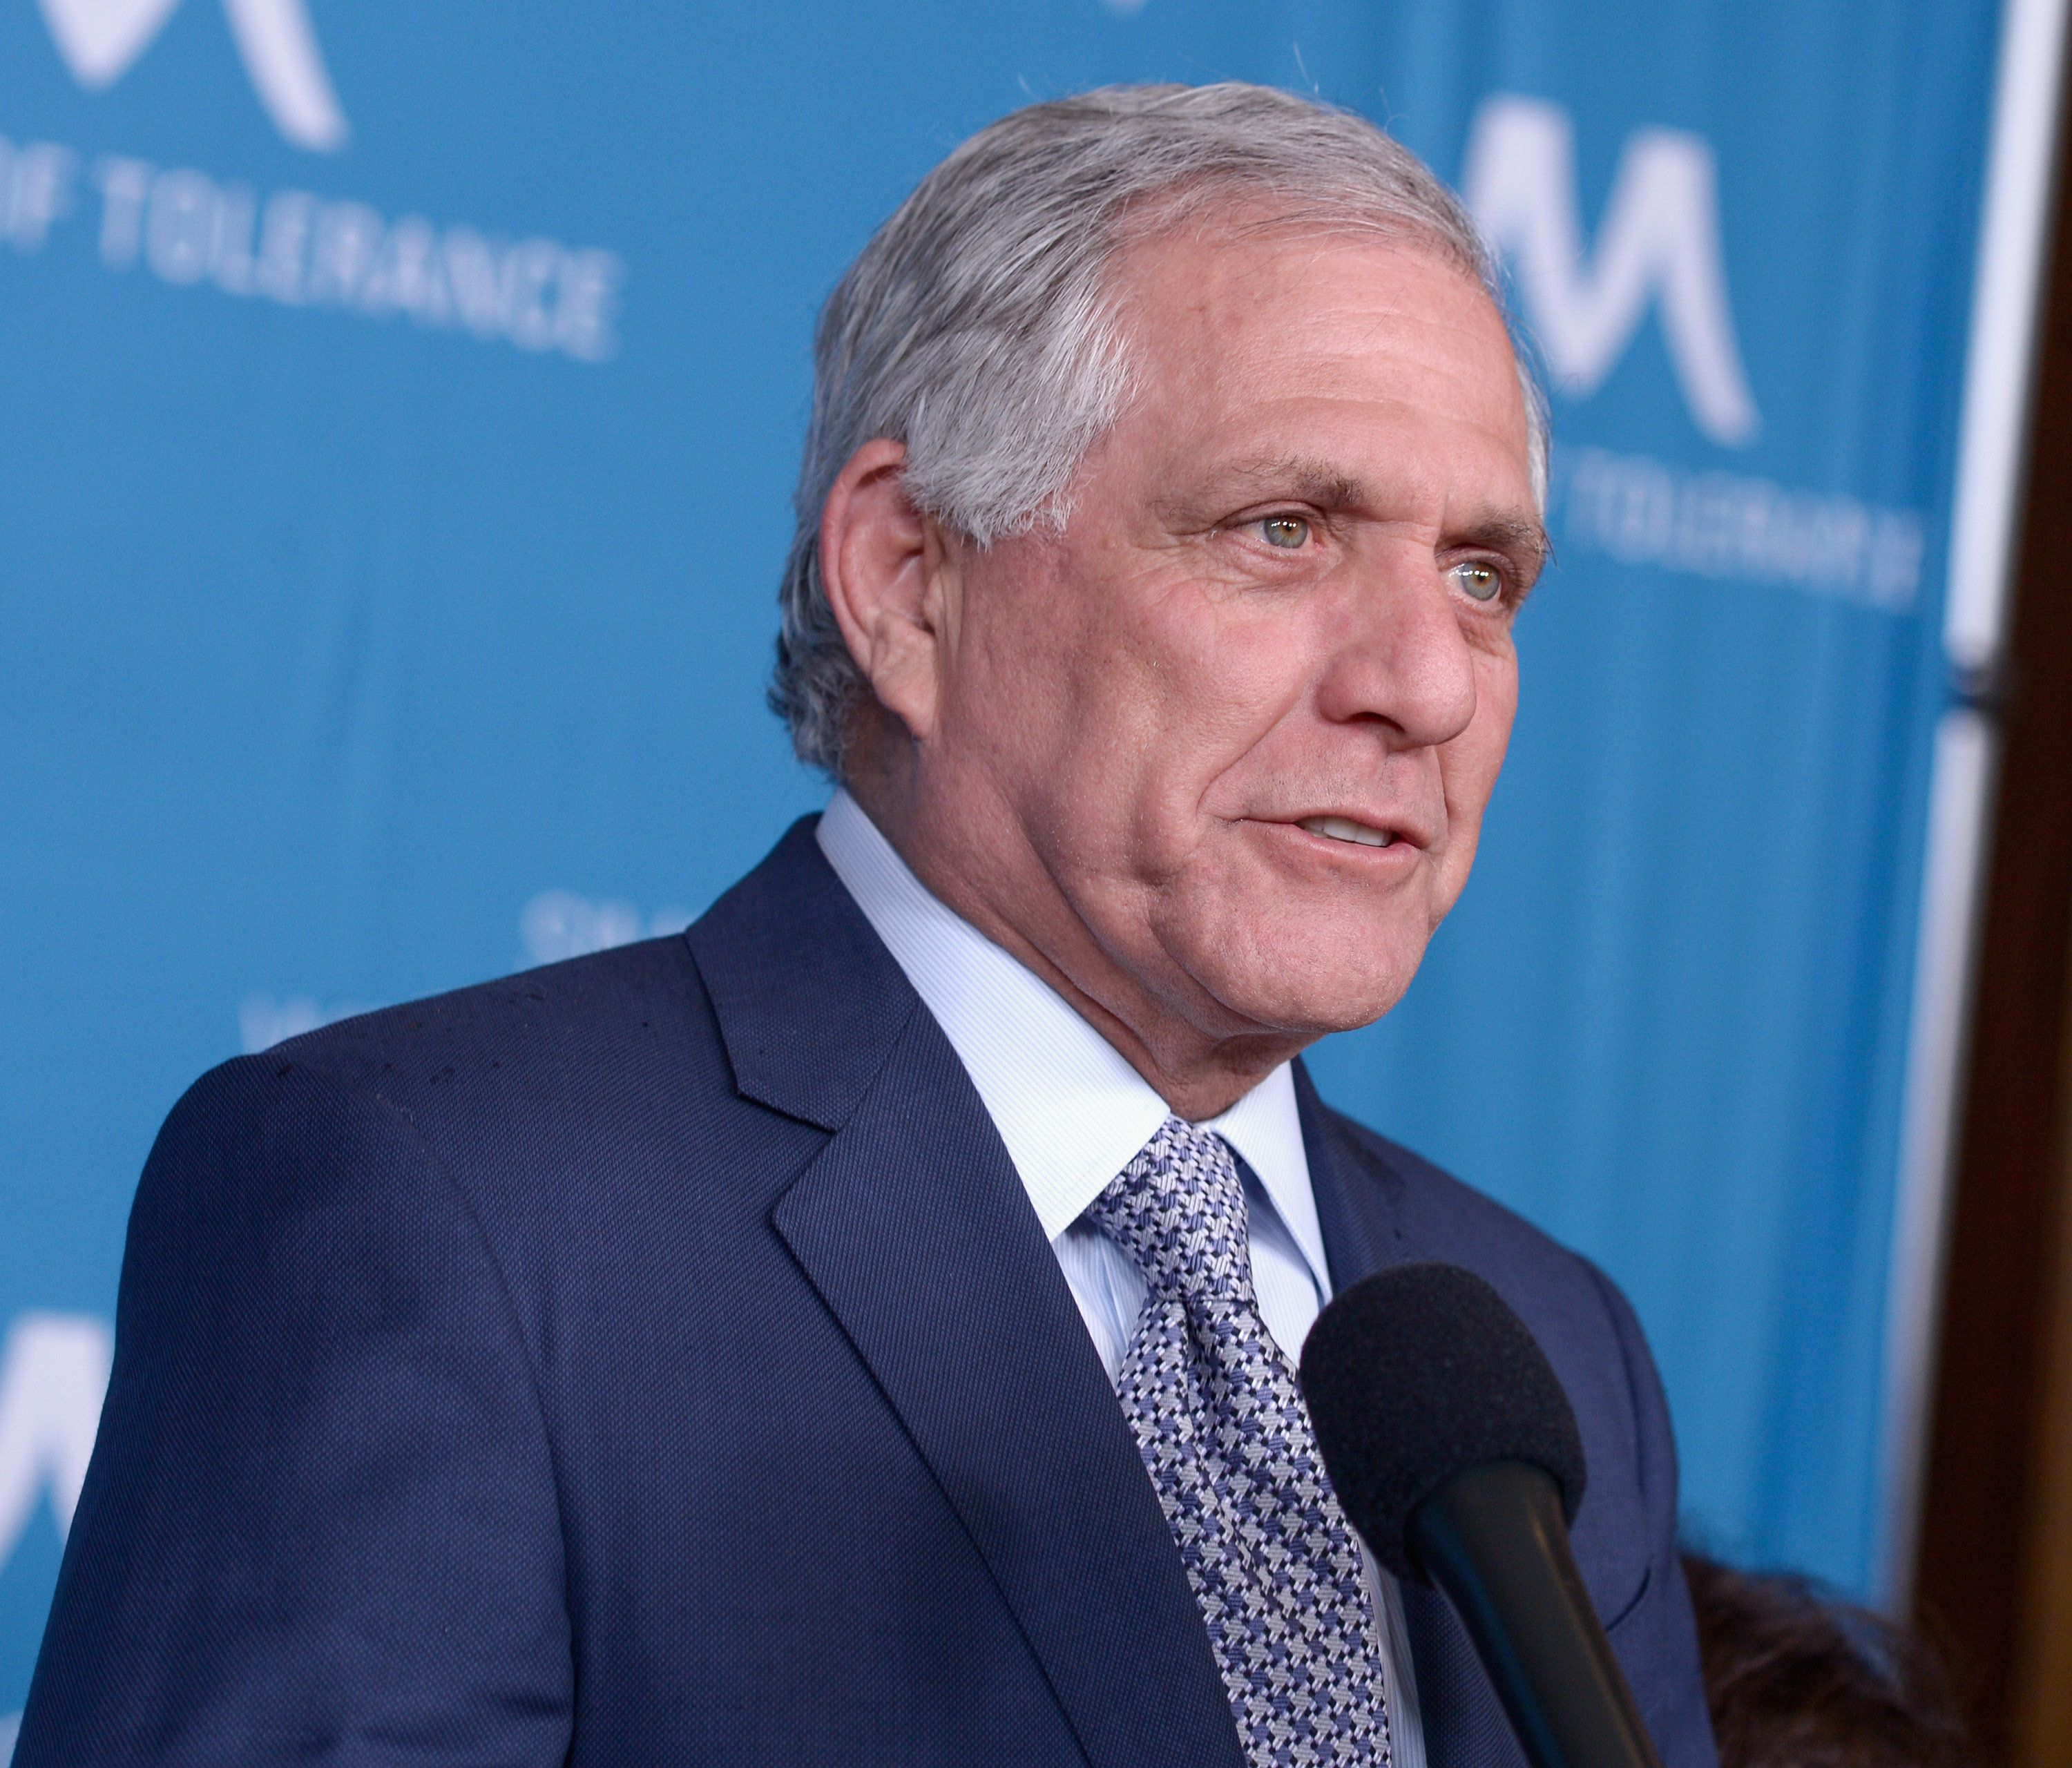 BEVERLY HILLS, CA - MARCH 22:  Les Moonves attends the 2018 Simon Wiesenthal Center National Tribute Dinner Honoring Leslie Moonves at The Beverly Hilton Hotel on March 22, 2018 in Beverly Hills, California.  (Photo by Tara Ziemba/Getty Images)